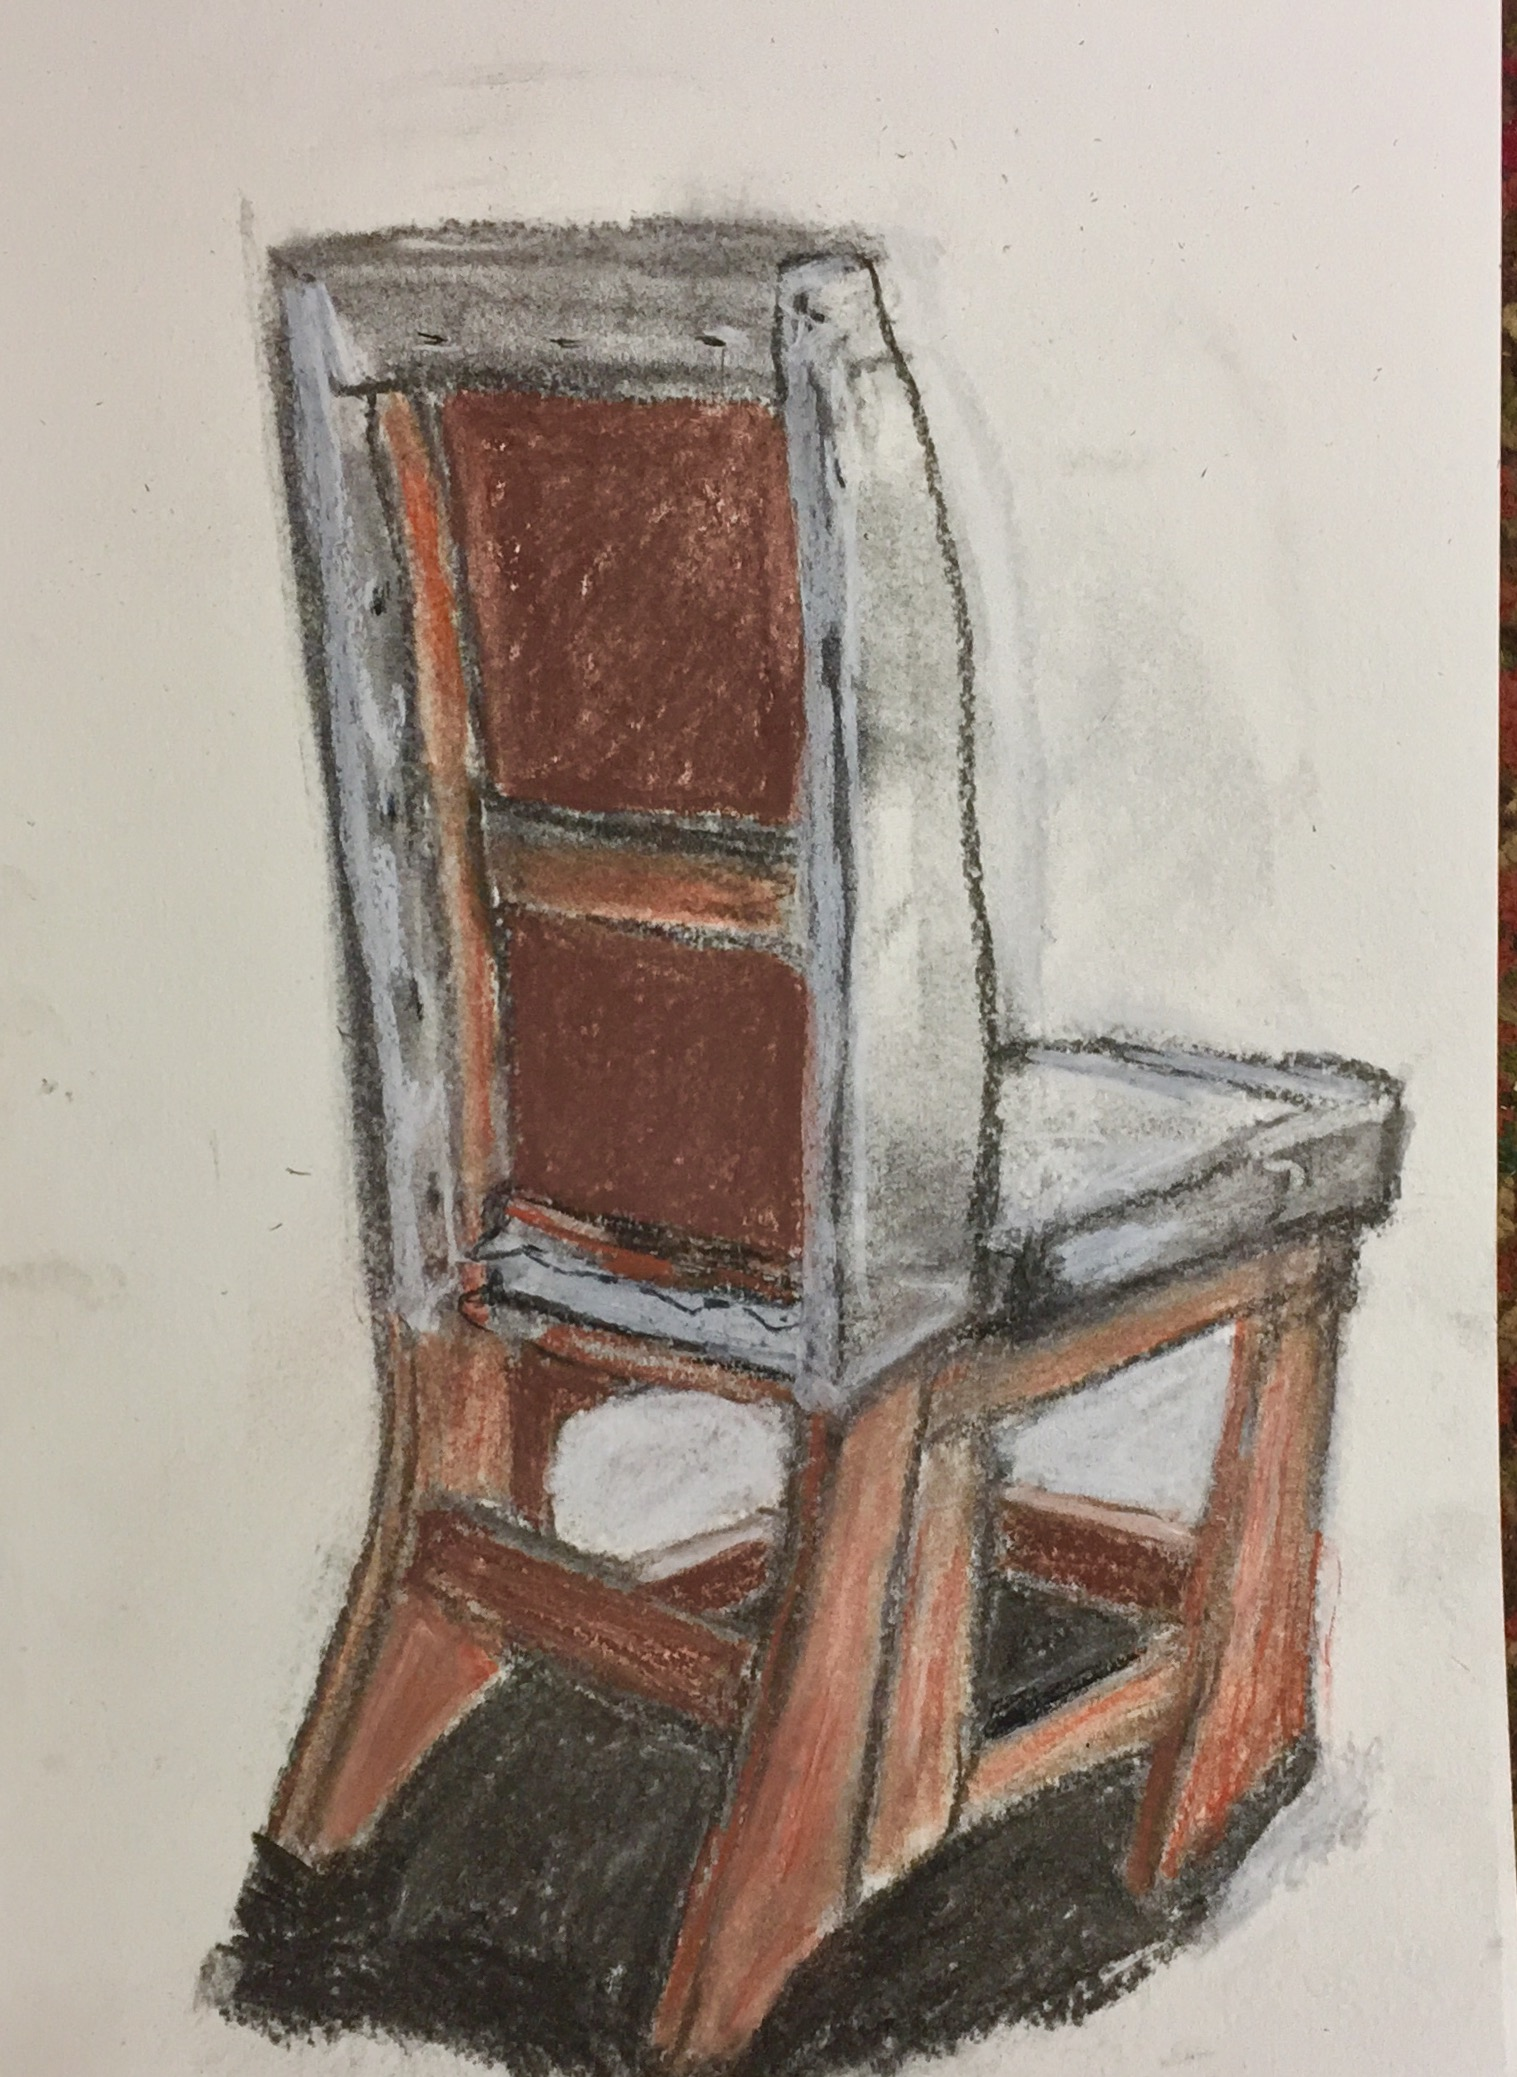 Drawn chair charcoal Spiro Charcoal Vine with drawn